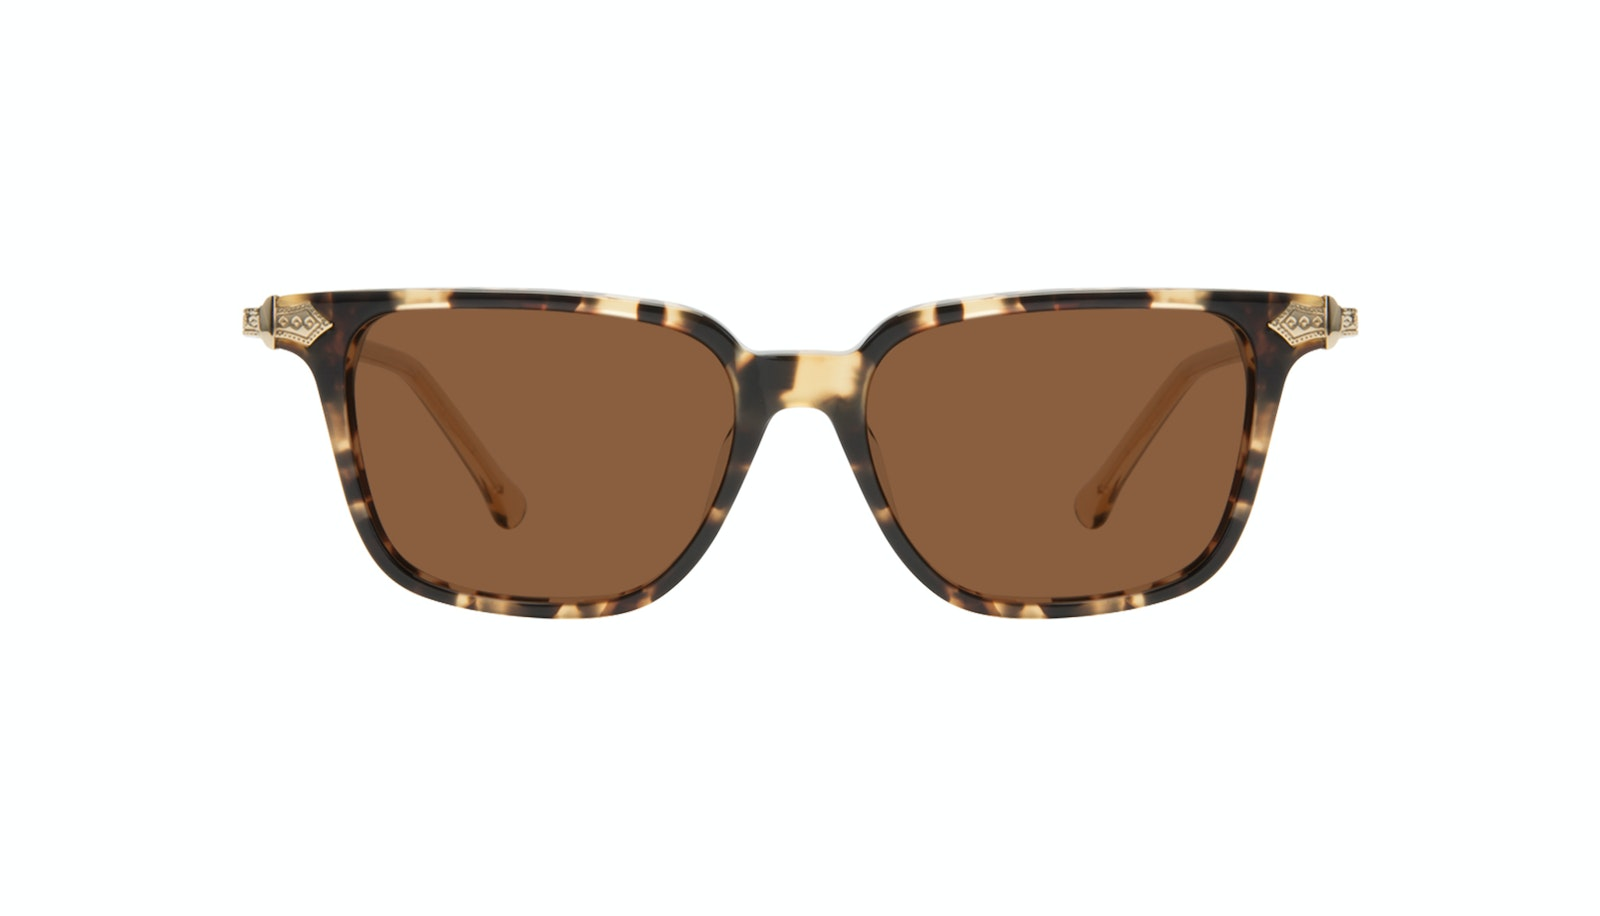 Affordable Fashion Glasses Square Sunglasses Women Twinkle Golden Chip